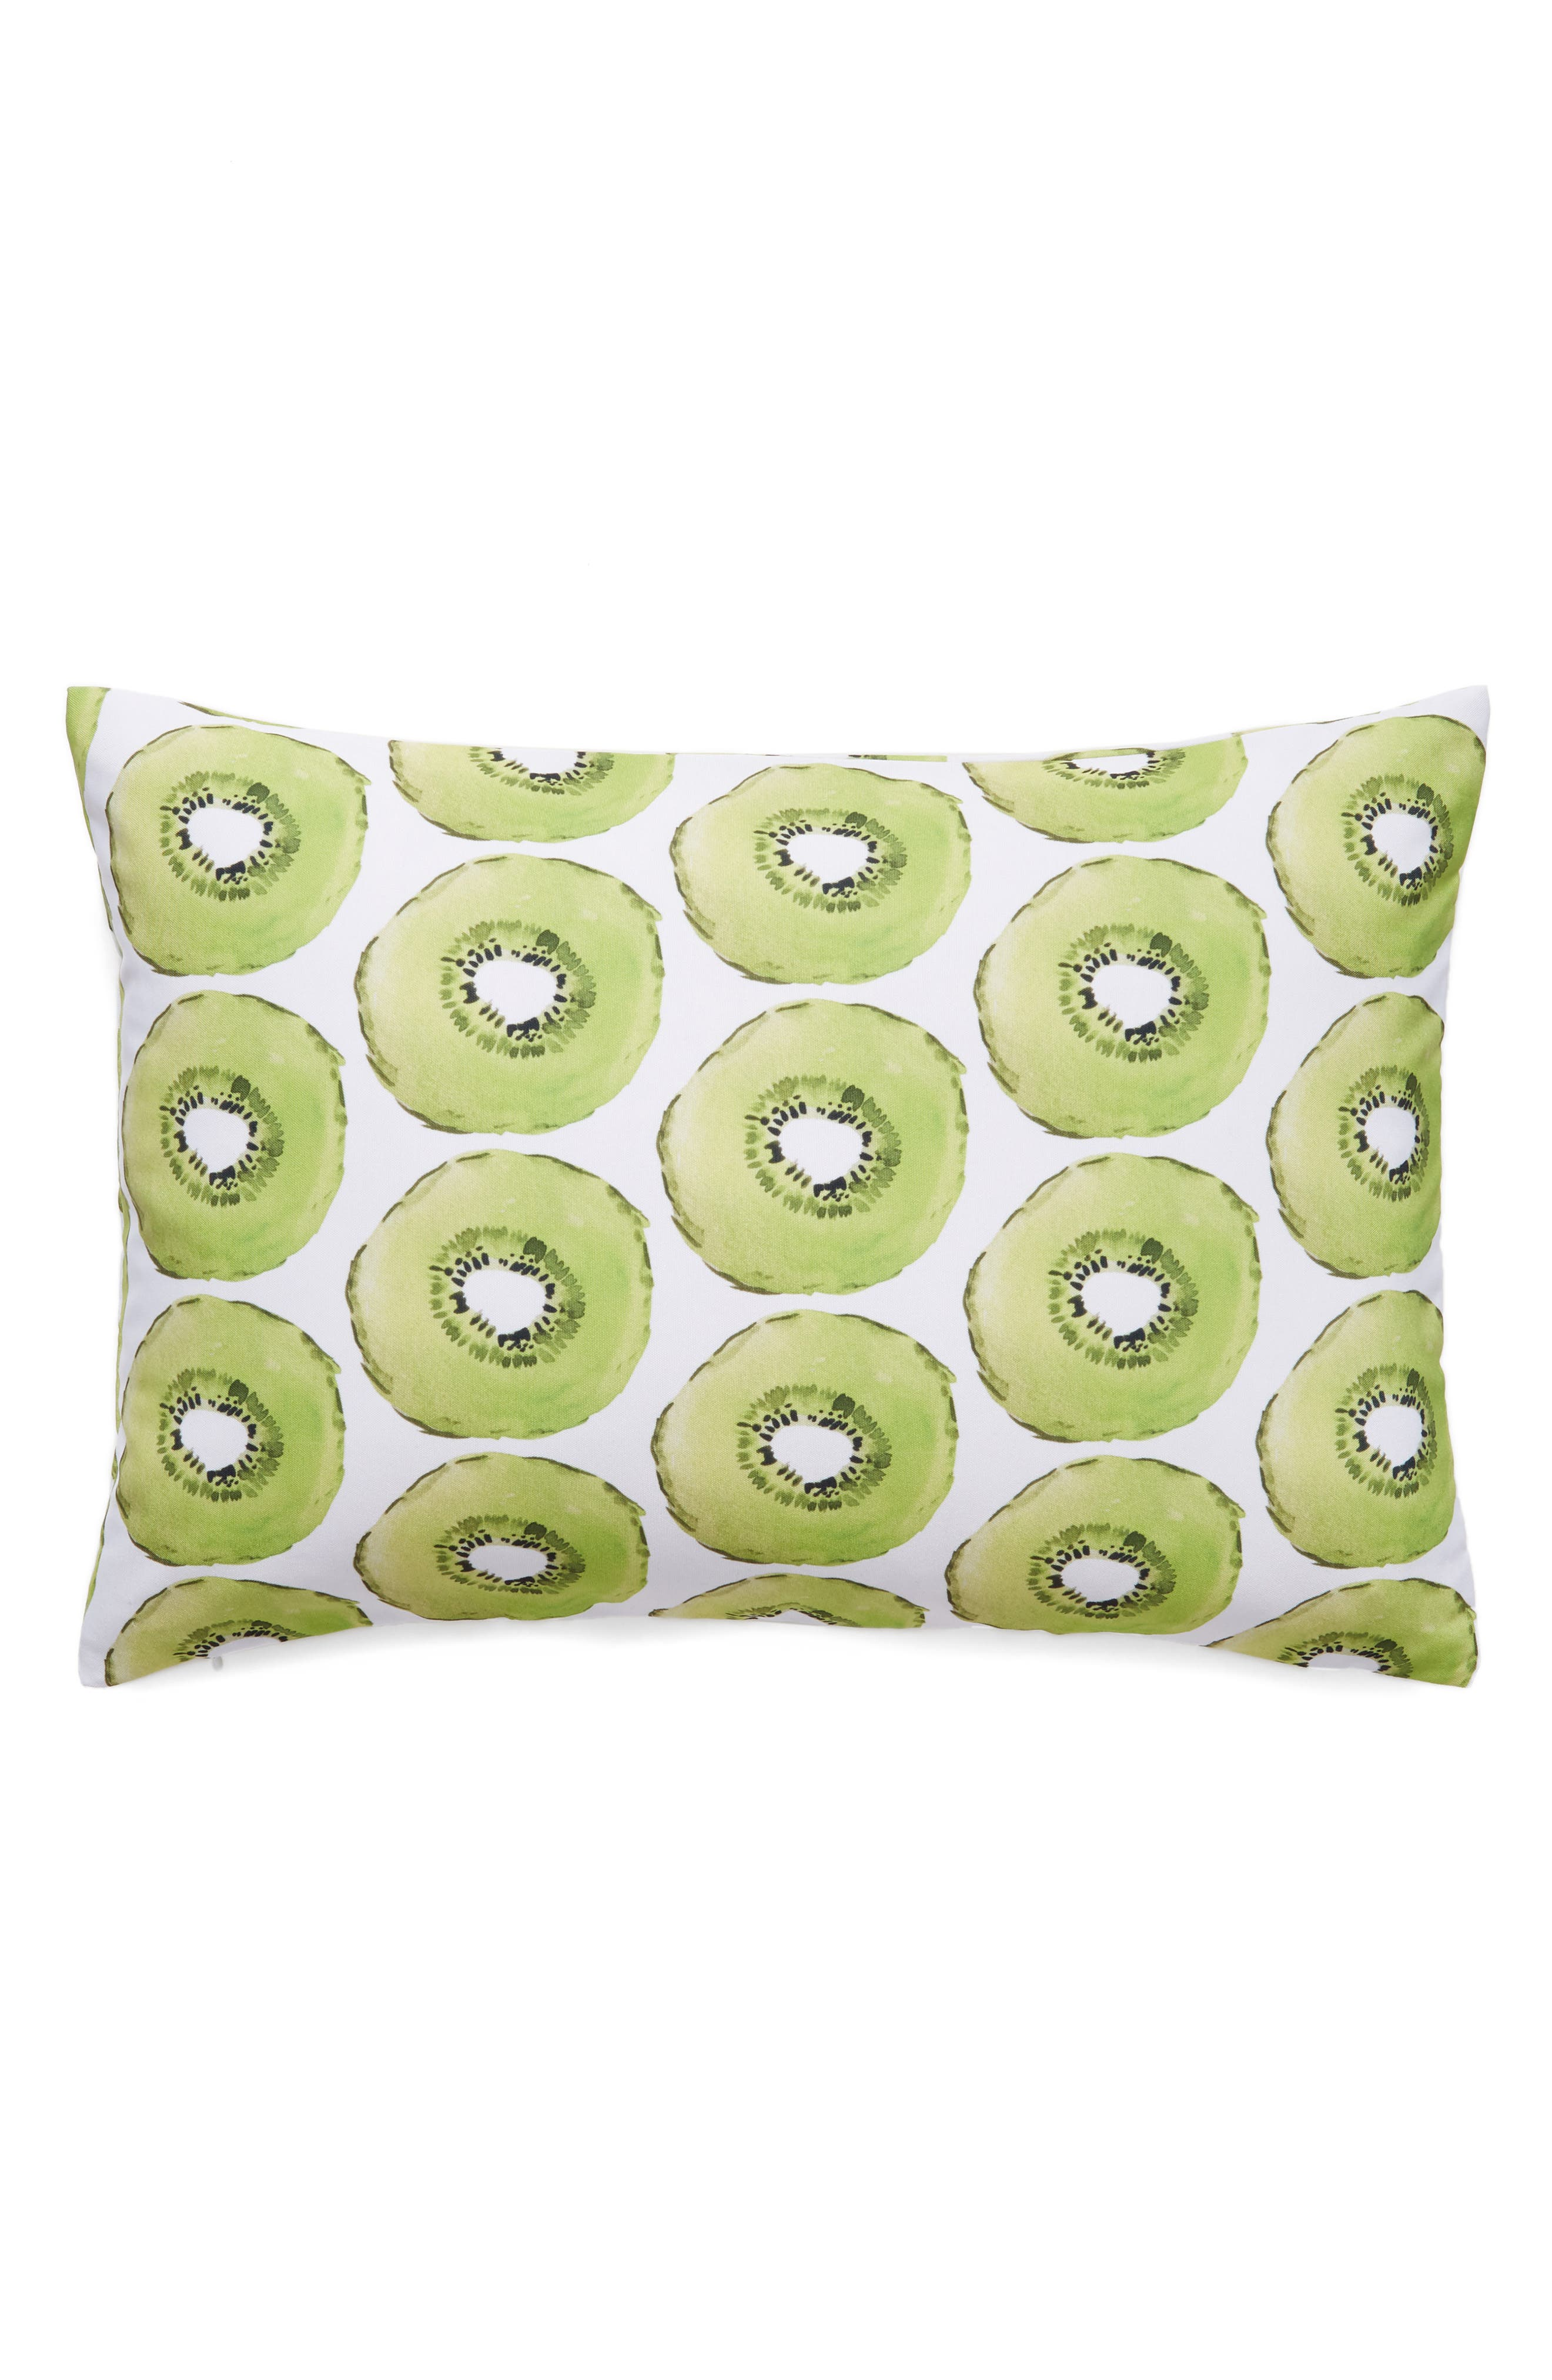 Kiwi Accent Pillow,                         Main,                         color, 300